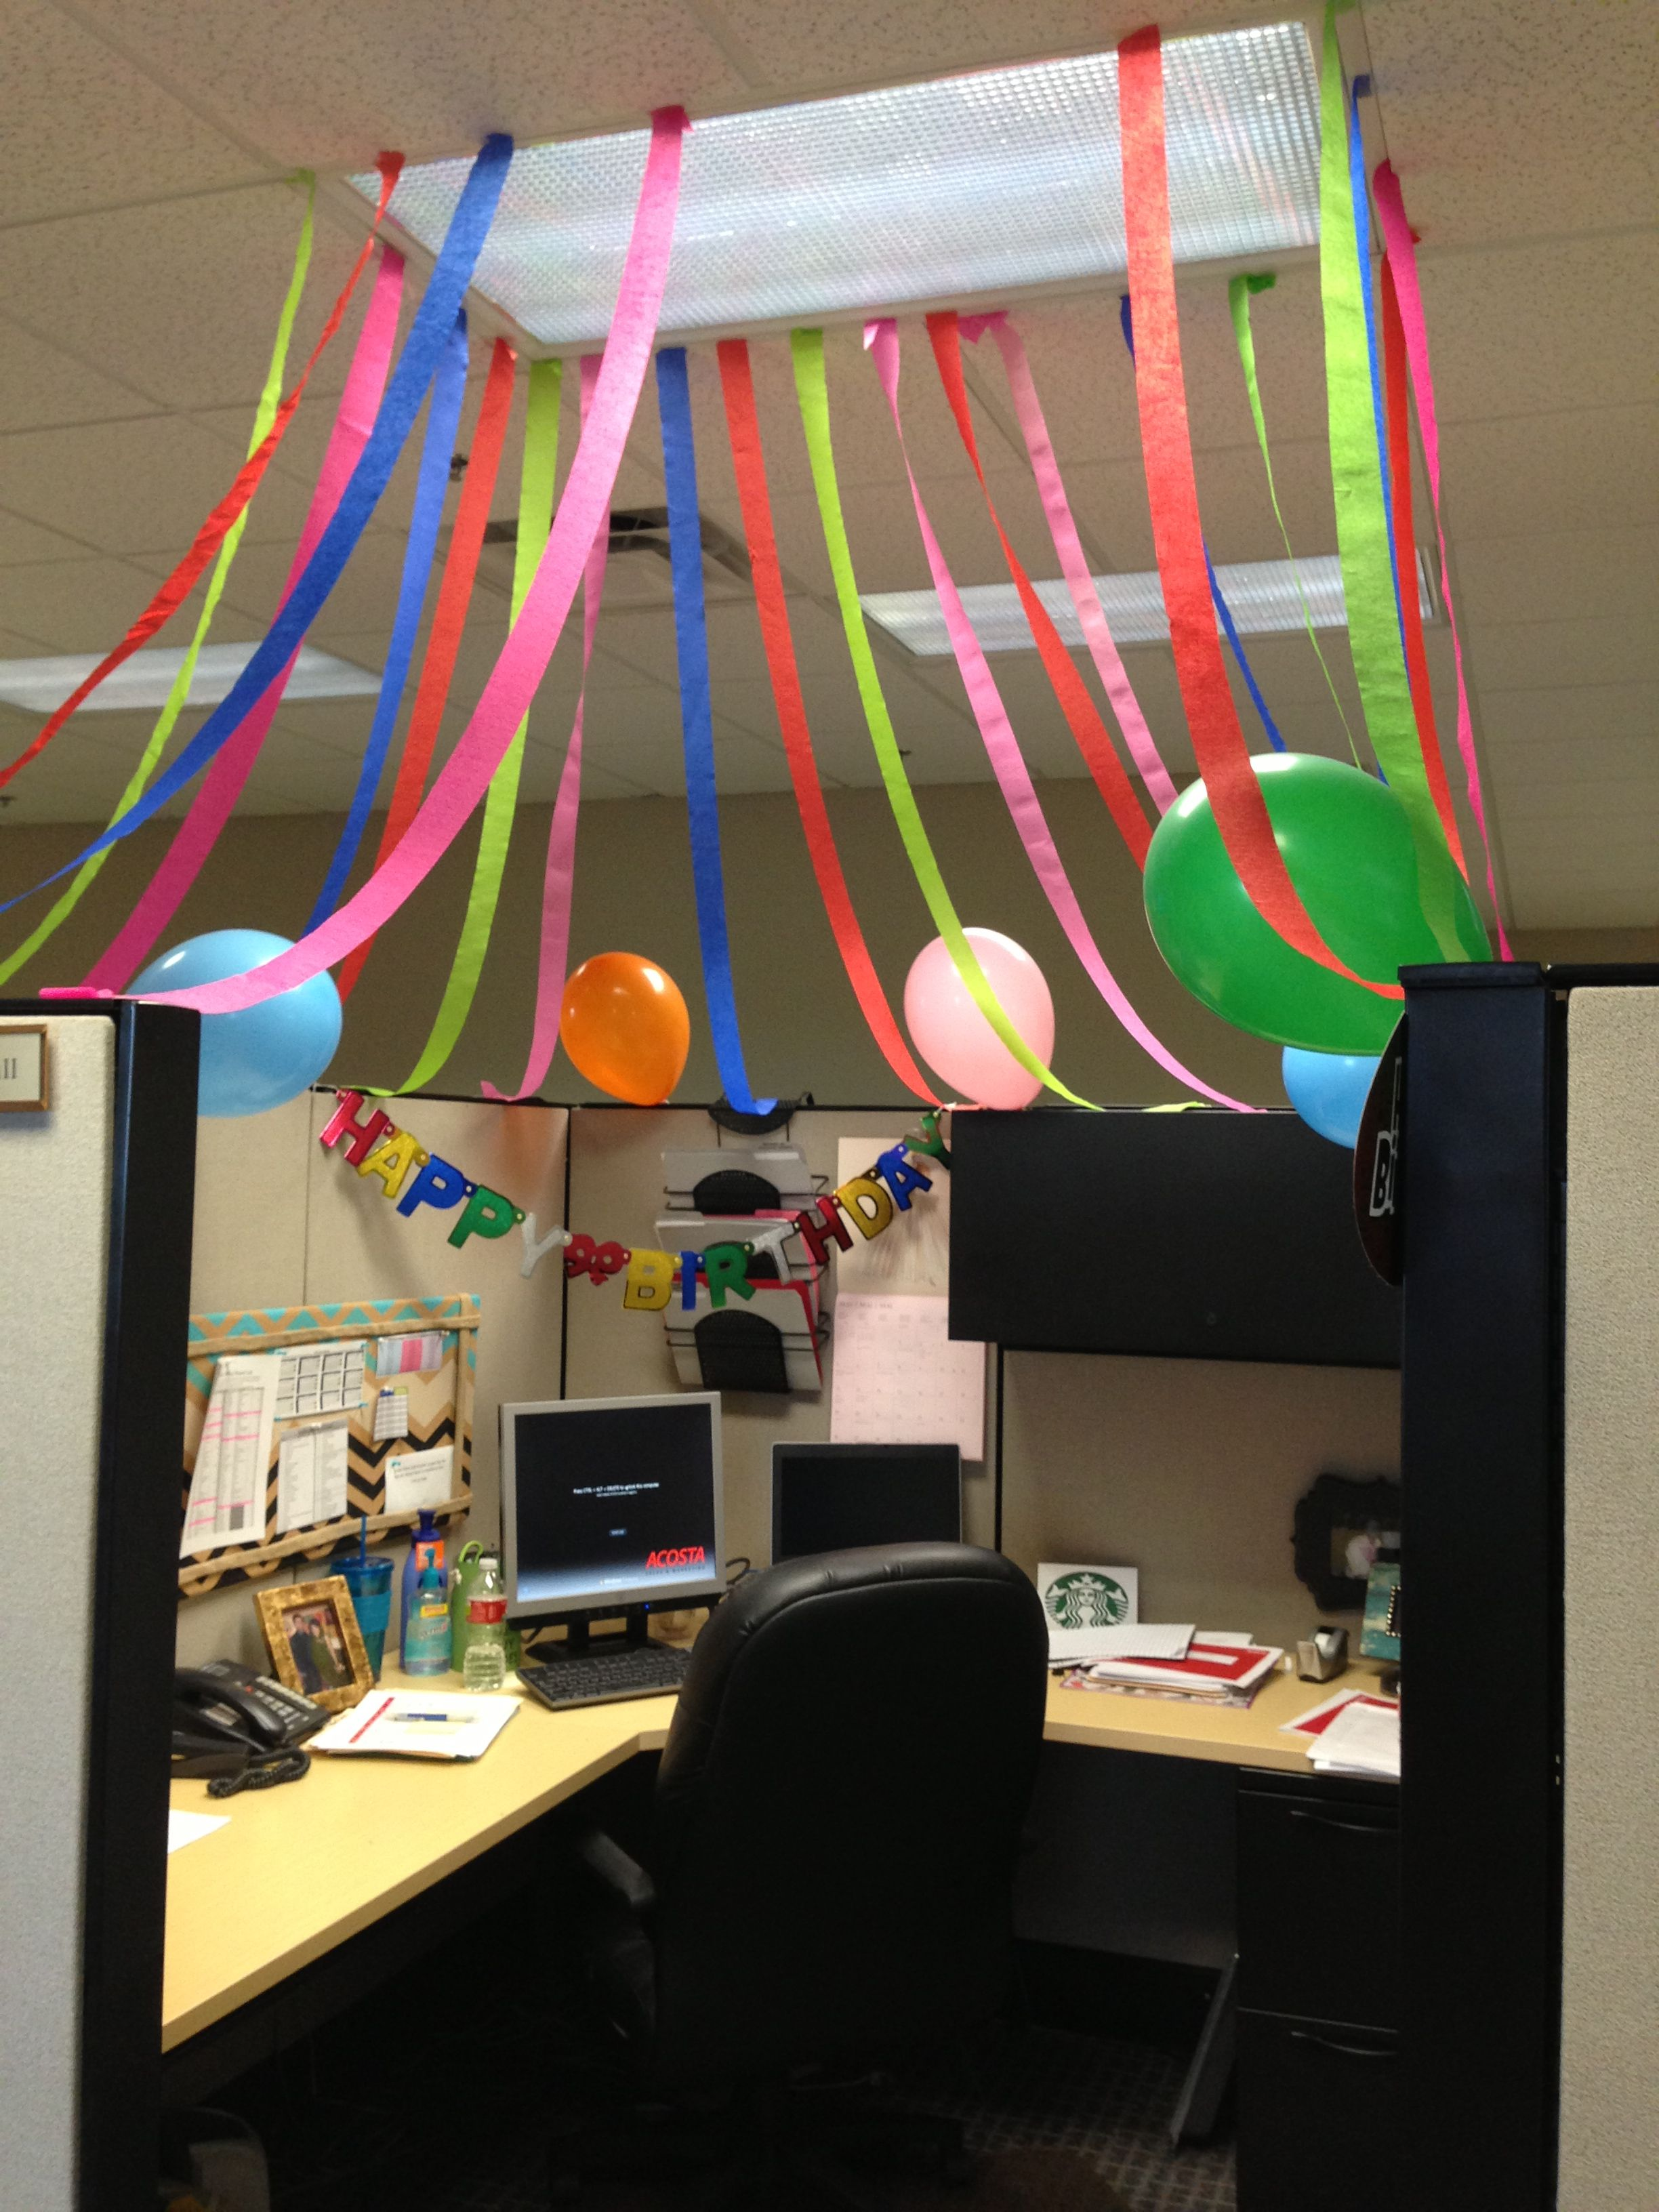 Birthday Party fun in the office Office Picks Pinterest